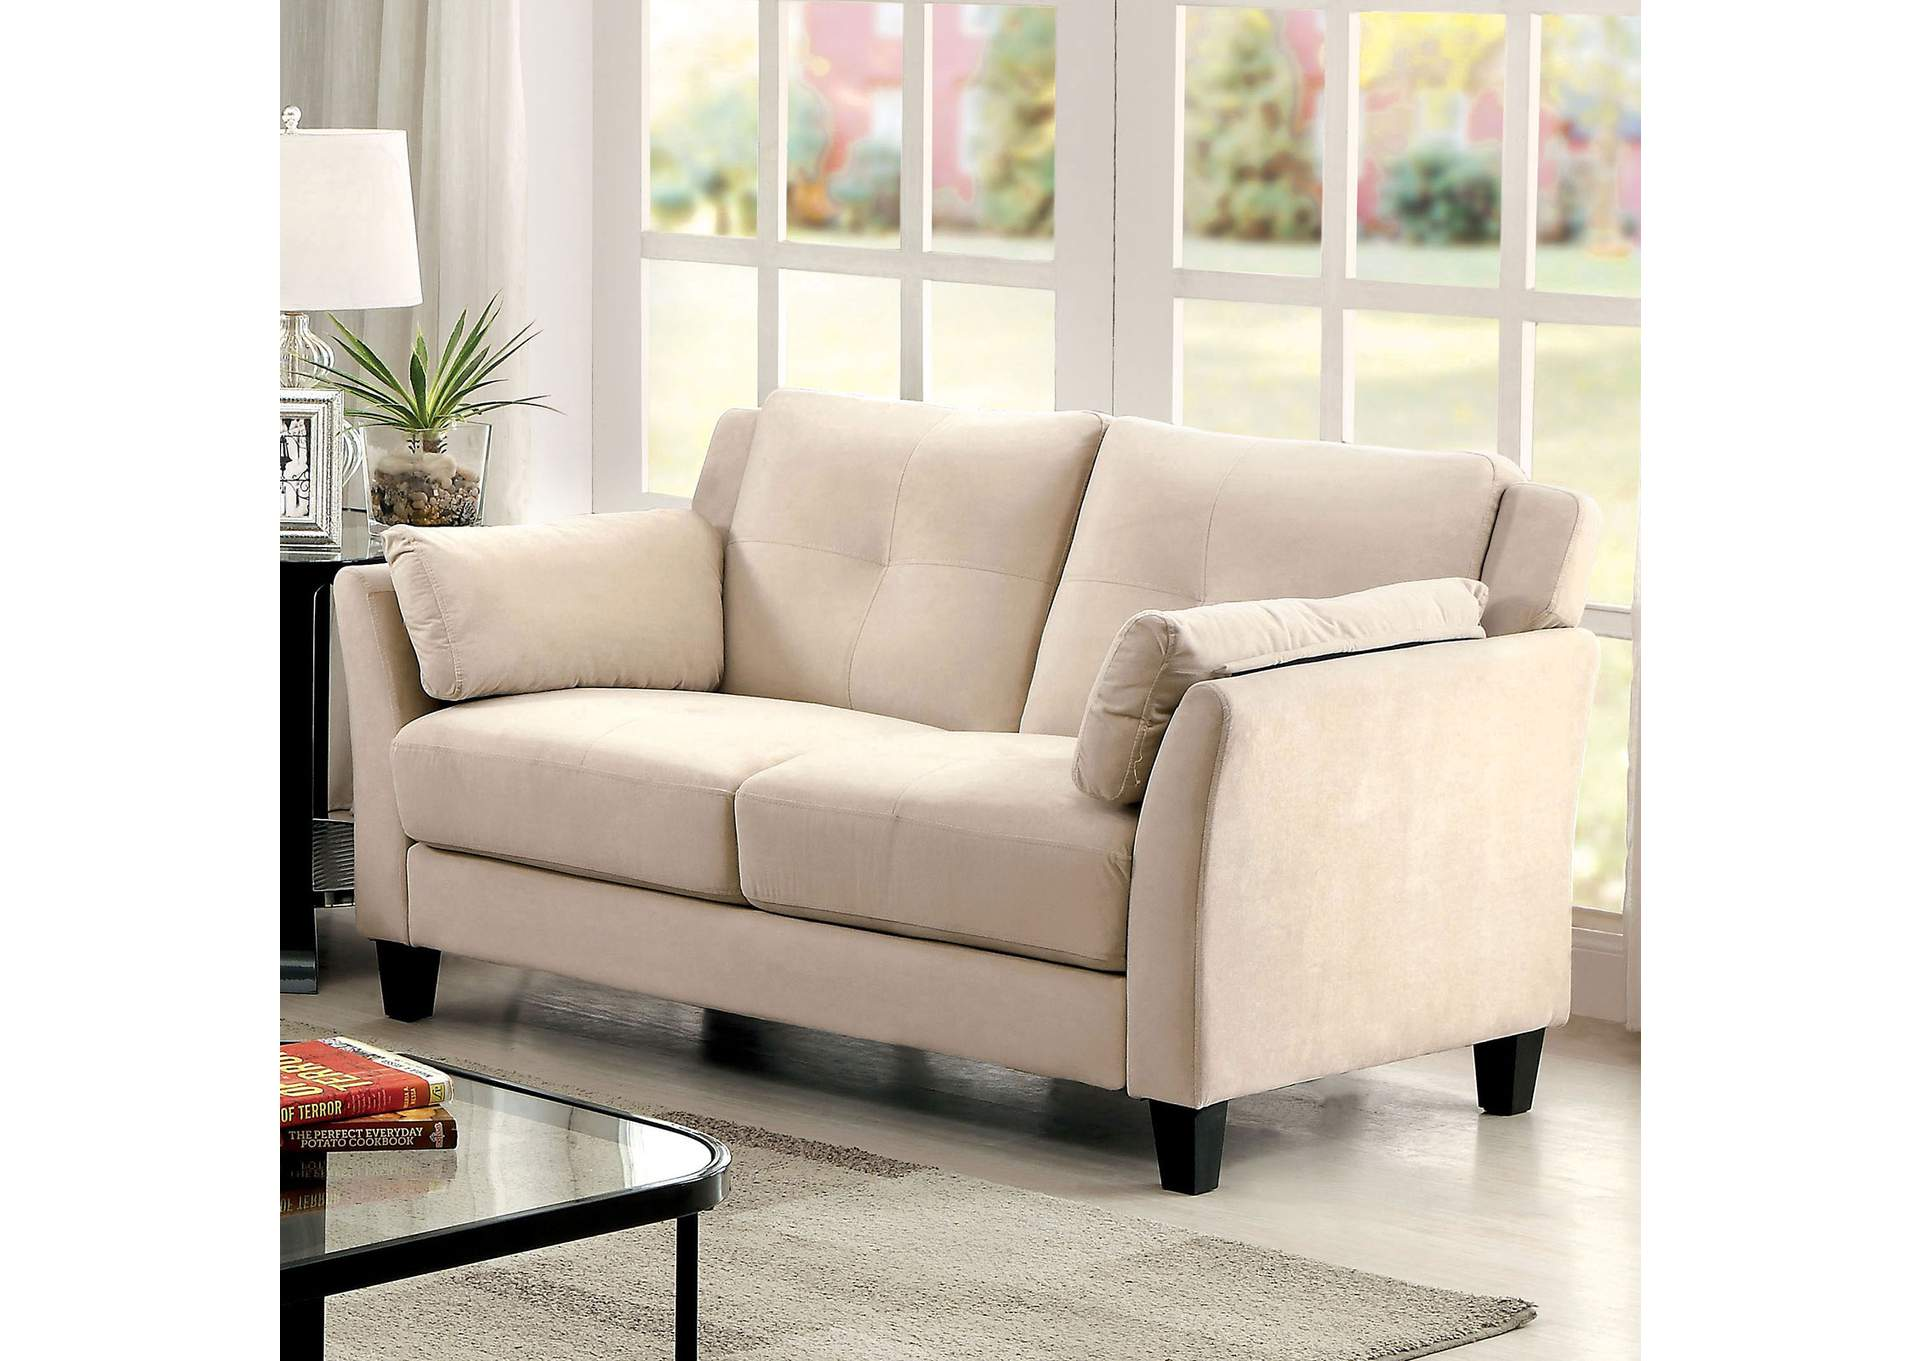 Add Charm Living Room Sets Ysabel Beige Loveseat,Furniture of America